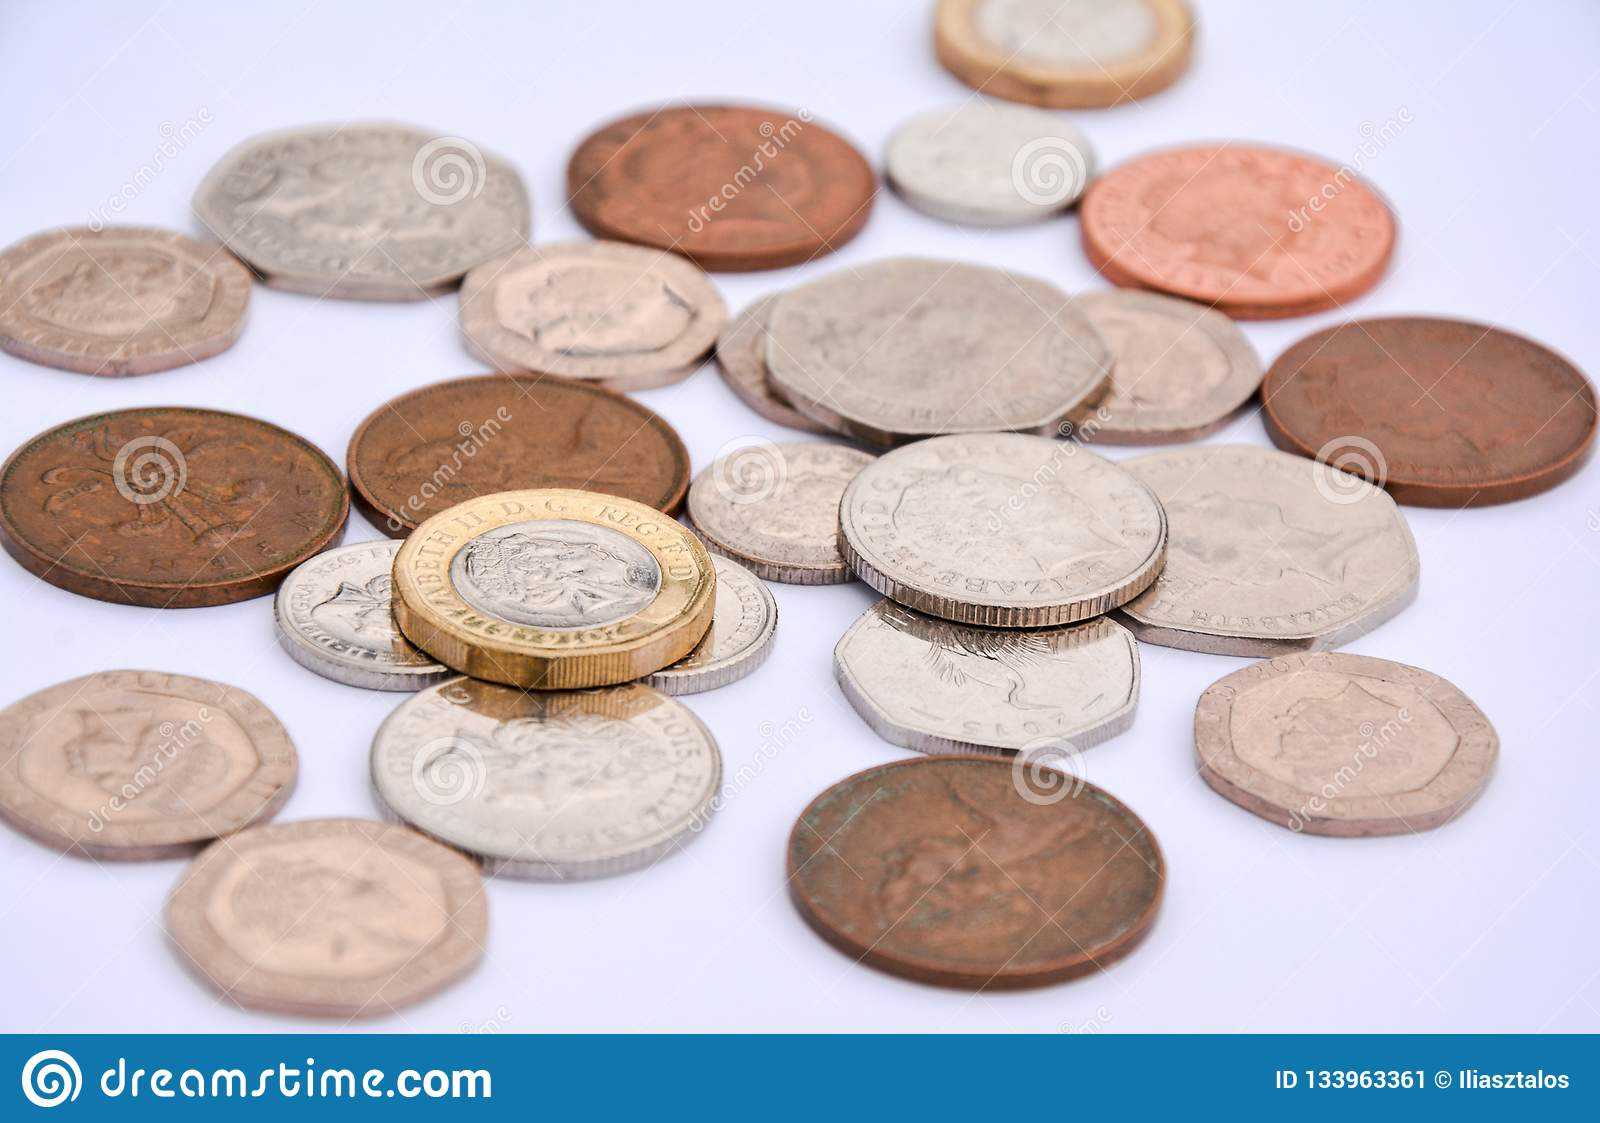 British Coins On White Background Stock Image - Image of metal, gold